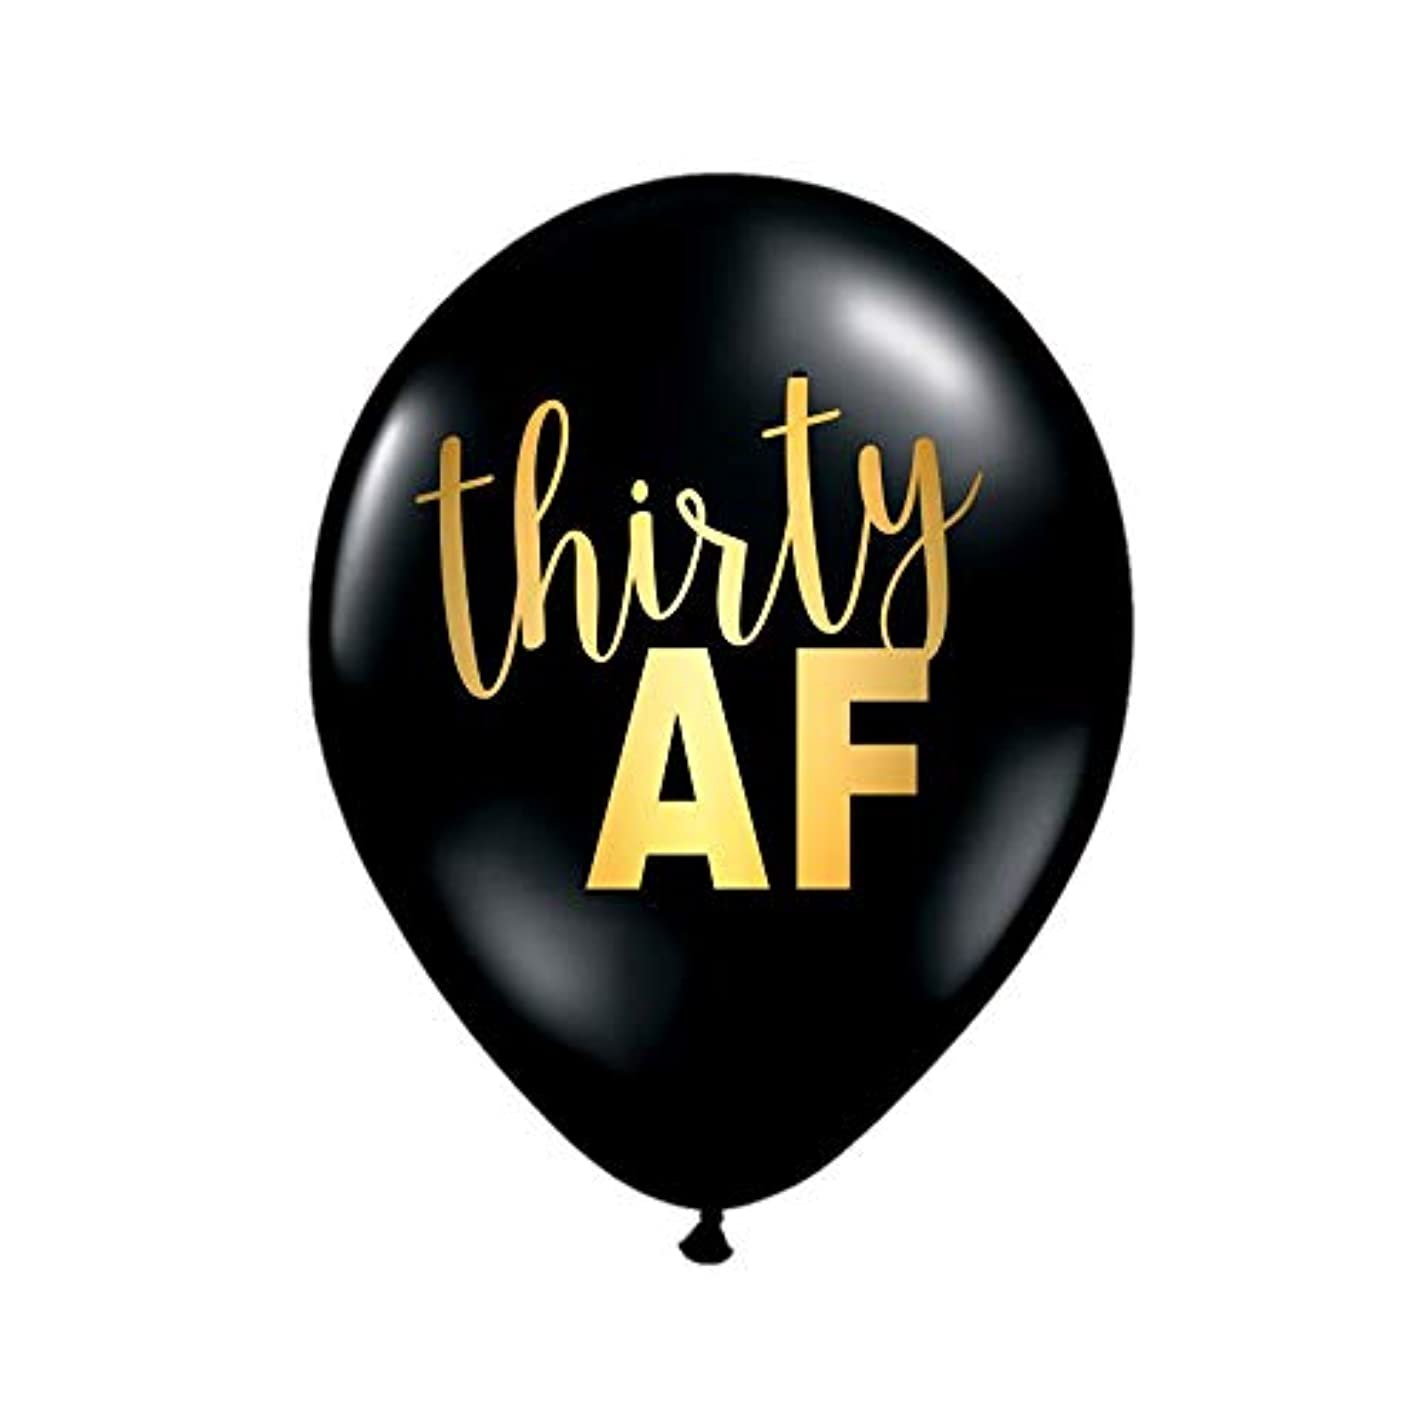 Thirty AF Balloons for a 30th Birthday Party in Black and Gold, 30th Birthday Decorations, 30th Birthday, Funny 30th Balloons, Gag Gift for 30th Birthday, 30 AF, Thirty AF, Set of 3